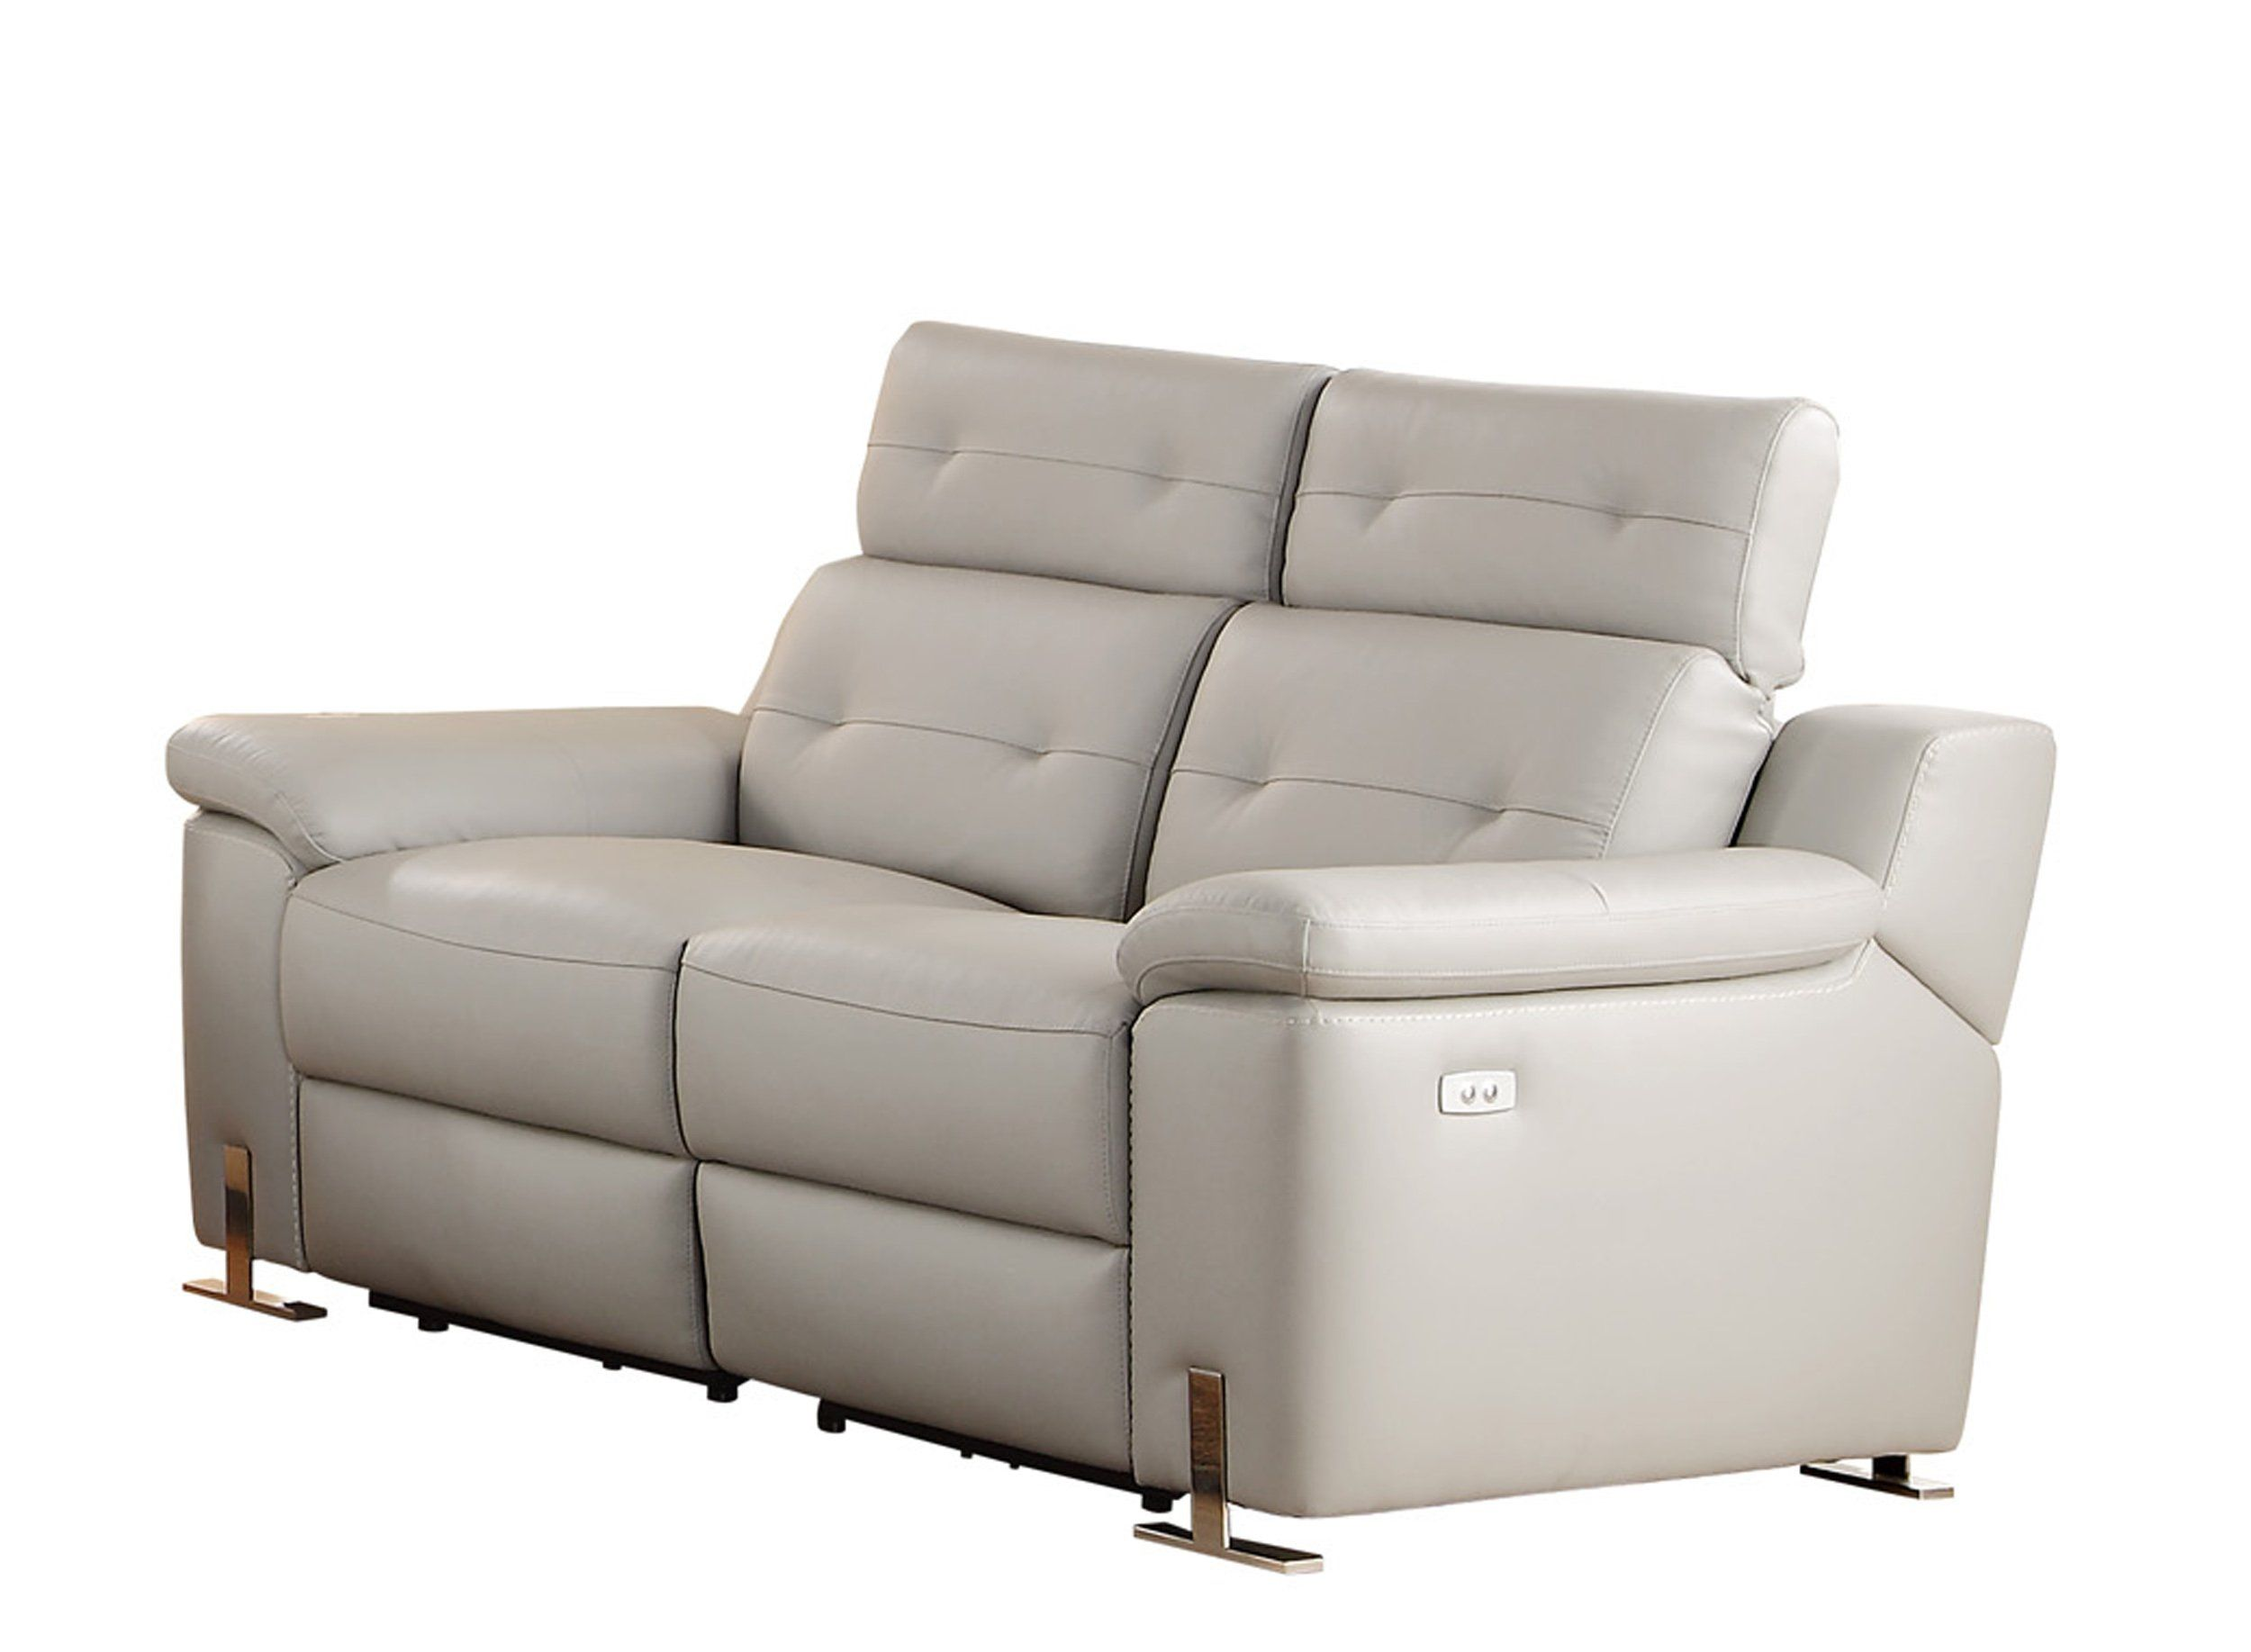 Homelegance Vortex Modern Design Power Double Reclining Loveseat